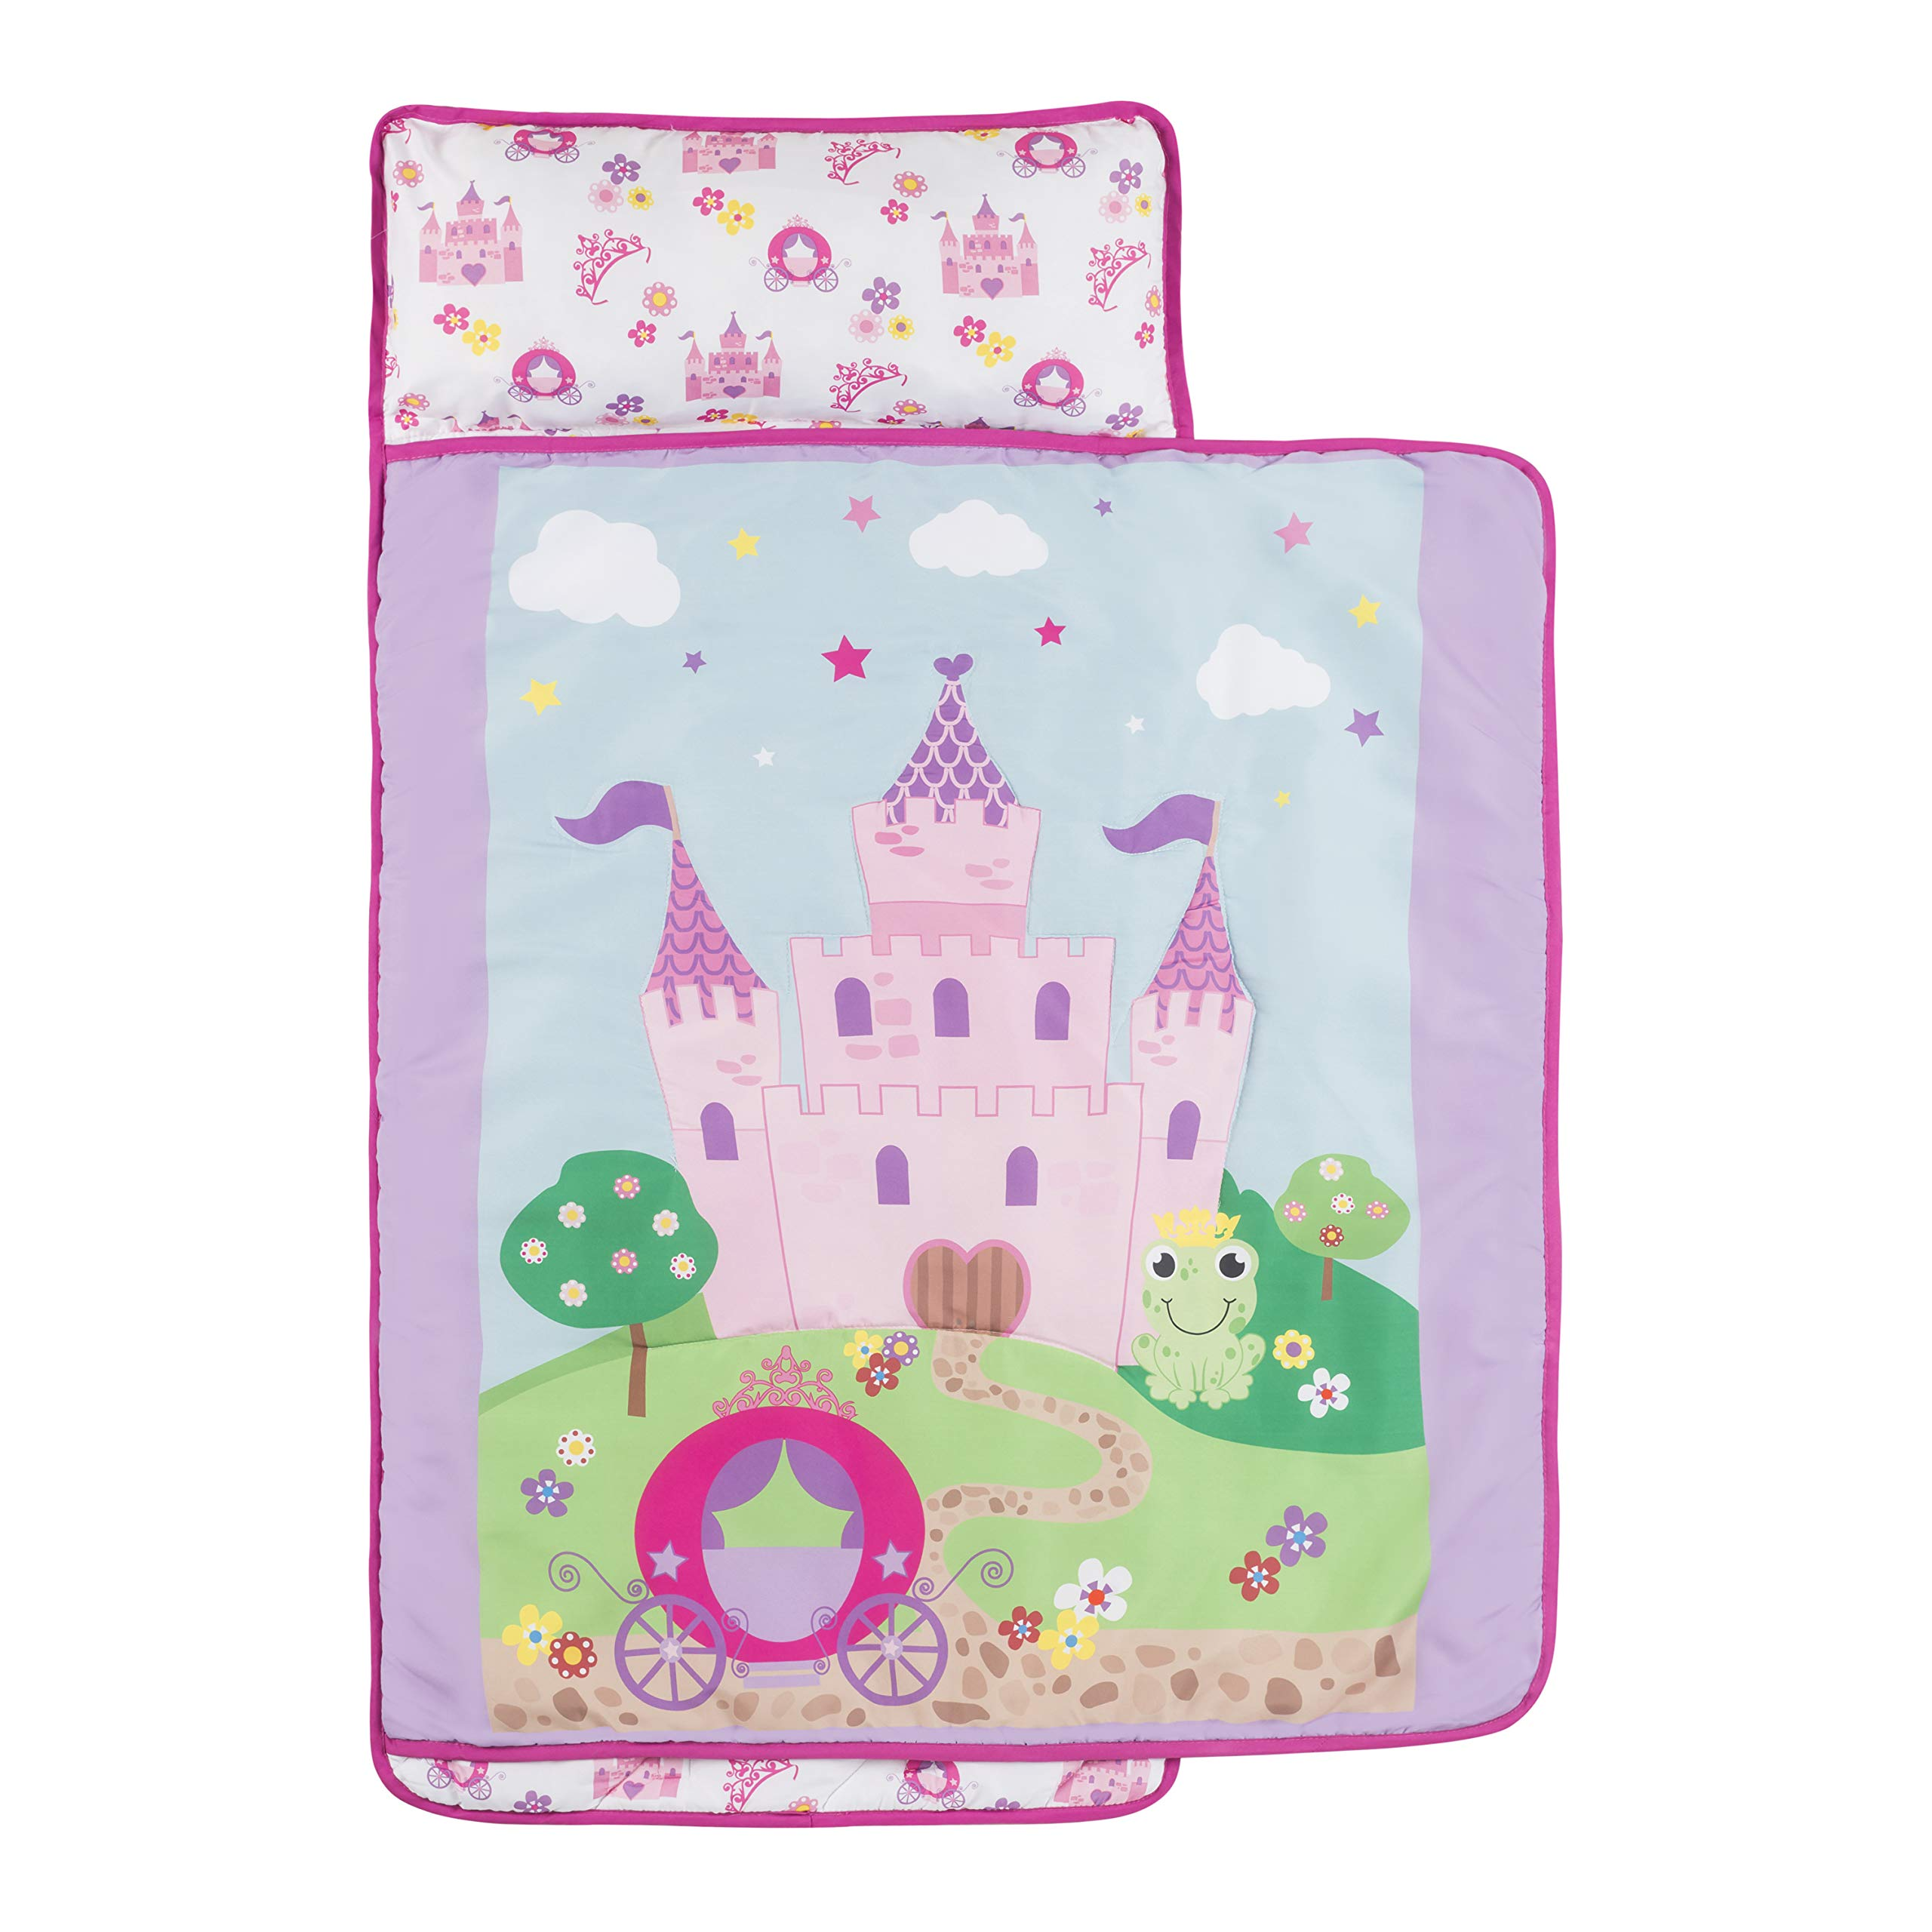 Everyday Kids Toddler Nap Mat with Removable Pillow -Princess Storyland- Carry Handle with Fastening Straps Closure, Rollup Design, Soft Microfiber for Preschool, Daycare, Sleeping Bag -Ages 2-4 years by EVERYDAY KIDS (Image #3)